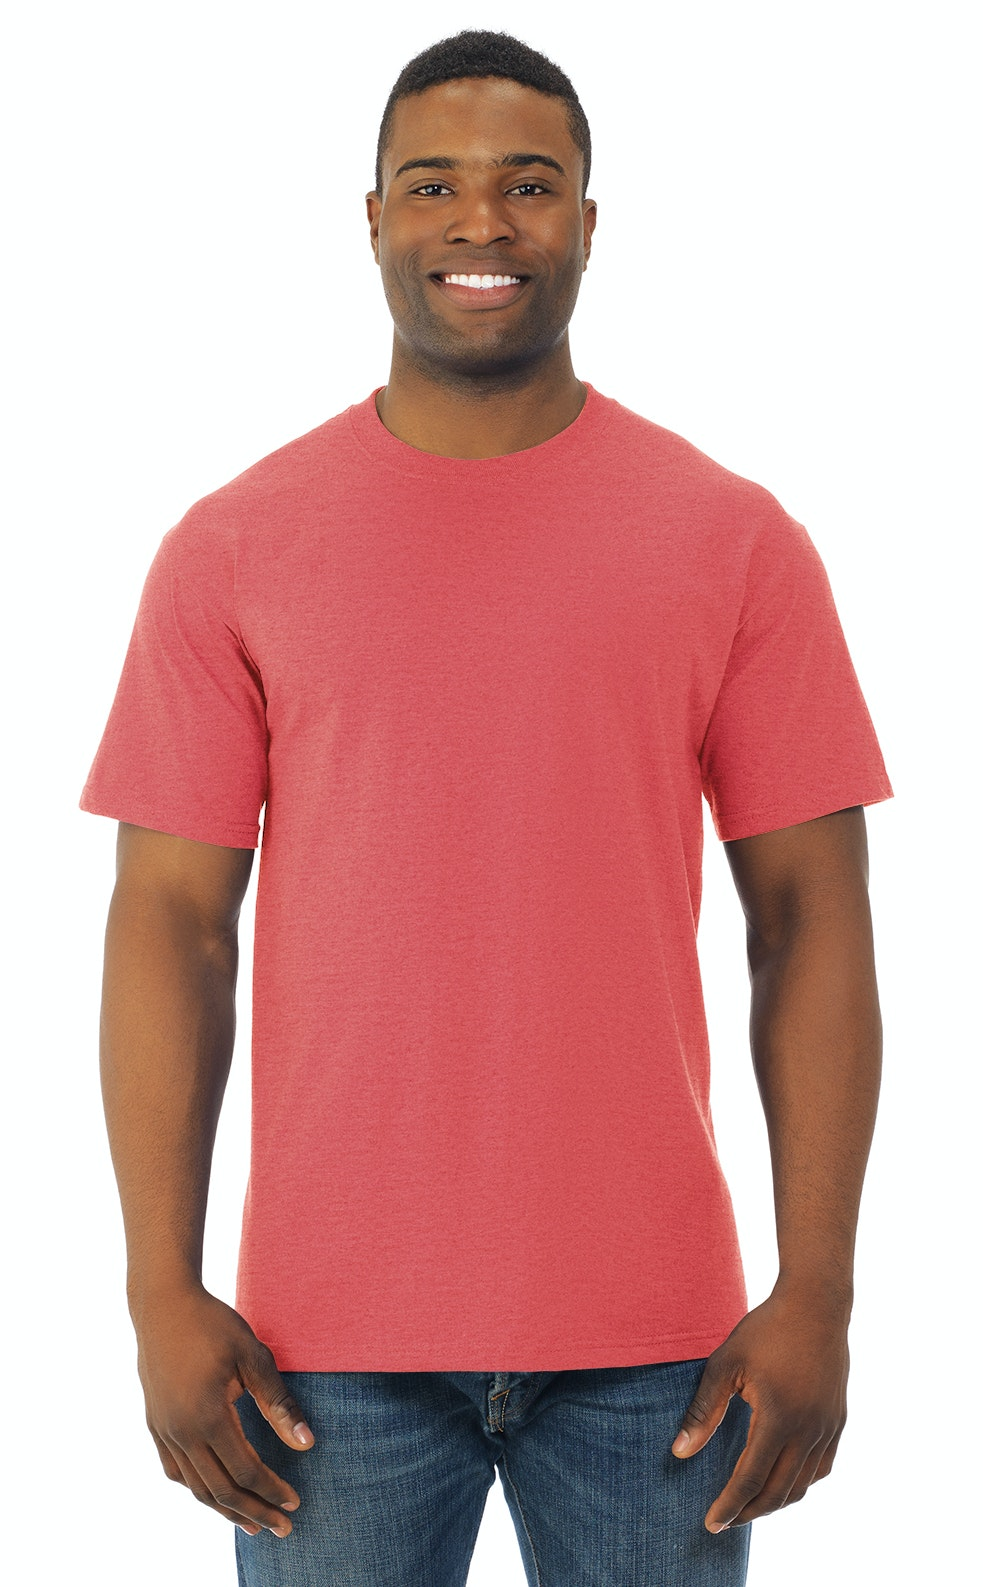 3930r retro heather coral front.jpg?ixlib=rb 0.3